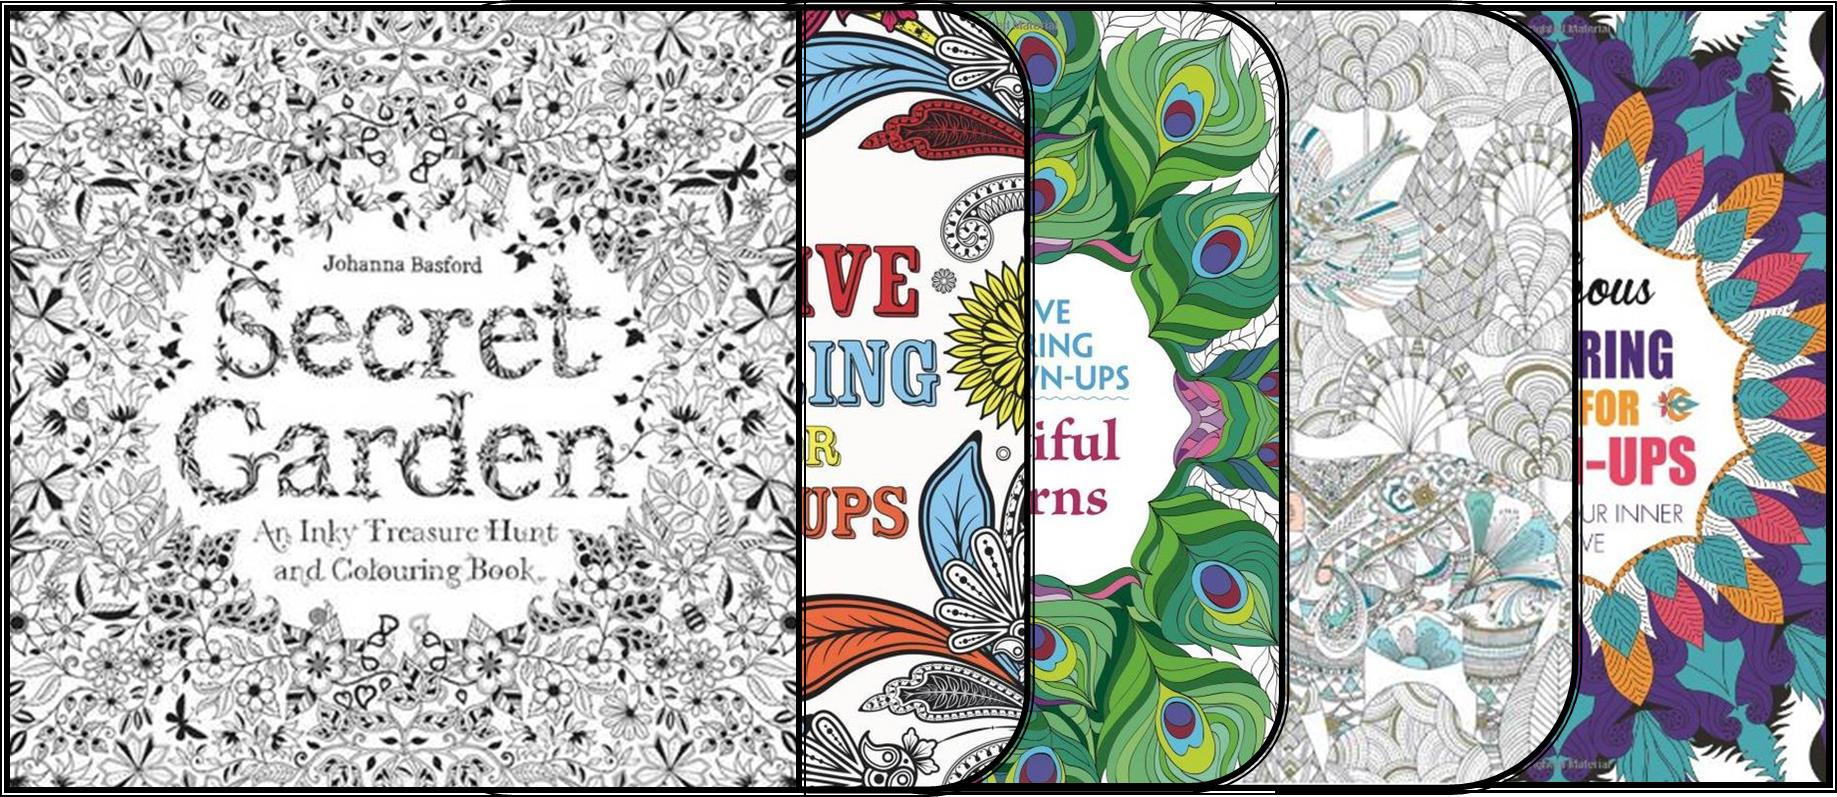 Adult colouring books a new form of art therapy the latest trend montage 3 squared solutioingenieria Gallery